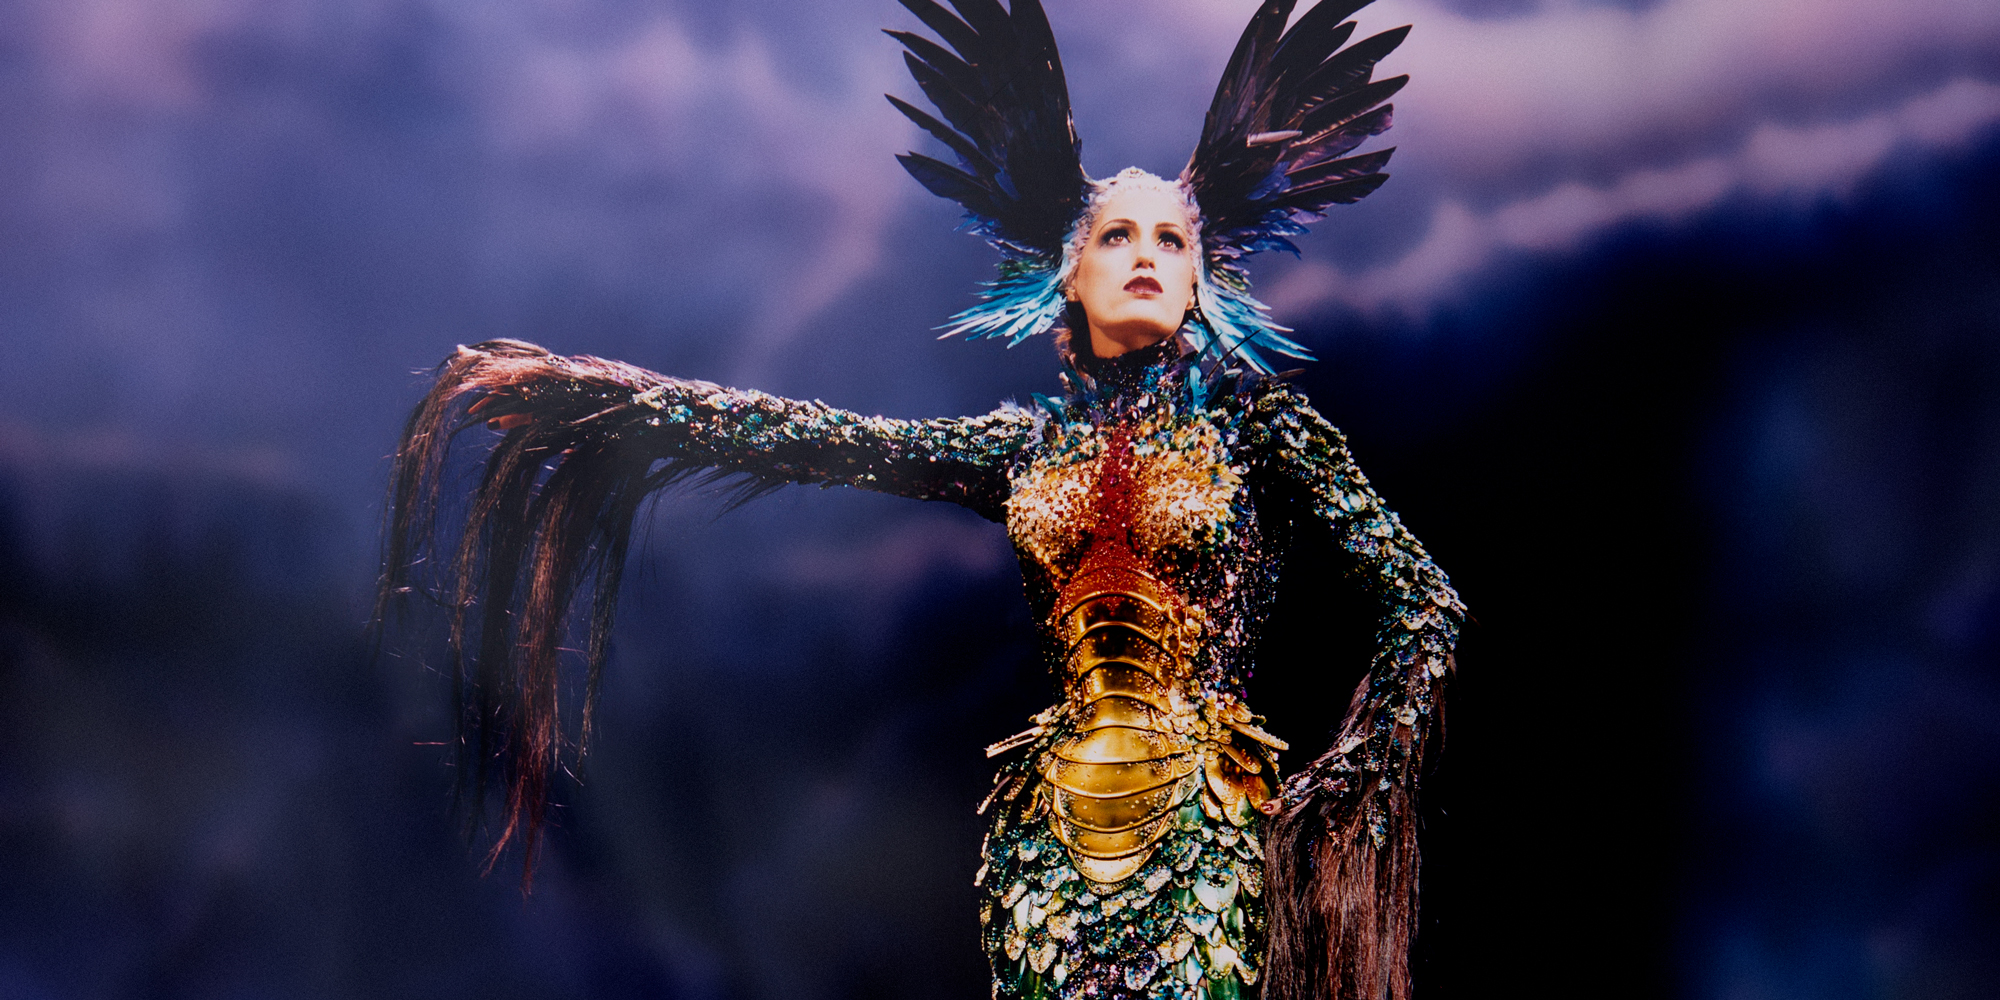 Alan Strutt, Yasmin Le Bon On Stage at the London Palladium, London, 1997; Evening Standard, October 31, 1997. Ensemble: Thierry Mugler, Chimera collection, haute couture fall/winter 1997-1998. Long sheath gown with scale-look body, feathers and horsehair embroidered with rhinestones, articulated golden bodice created in collaboration with Jean‑Jacques Urcun and Mr. Pearl.